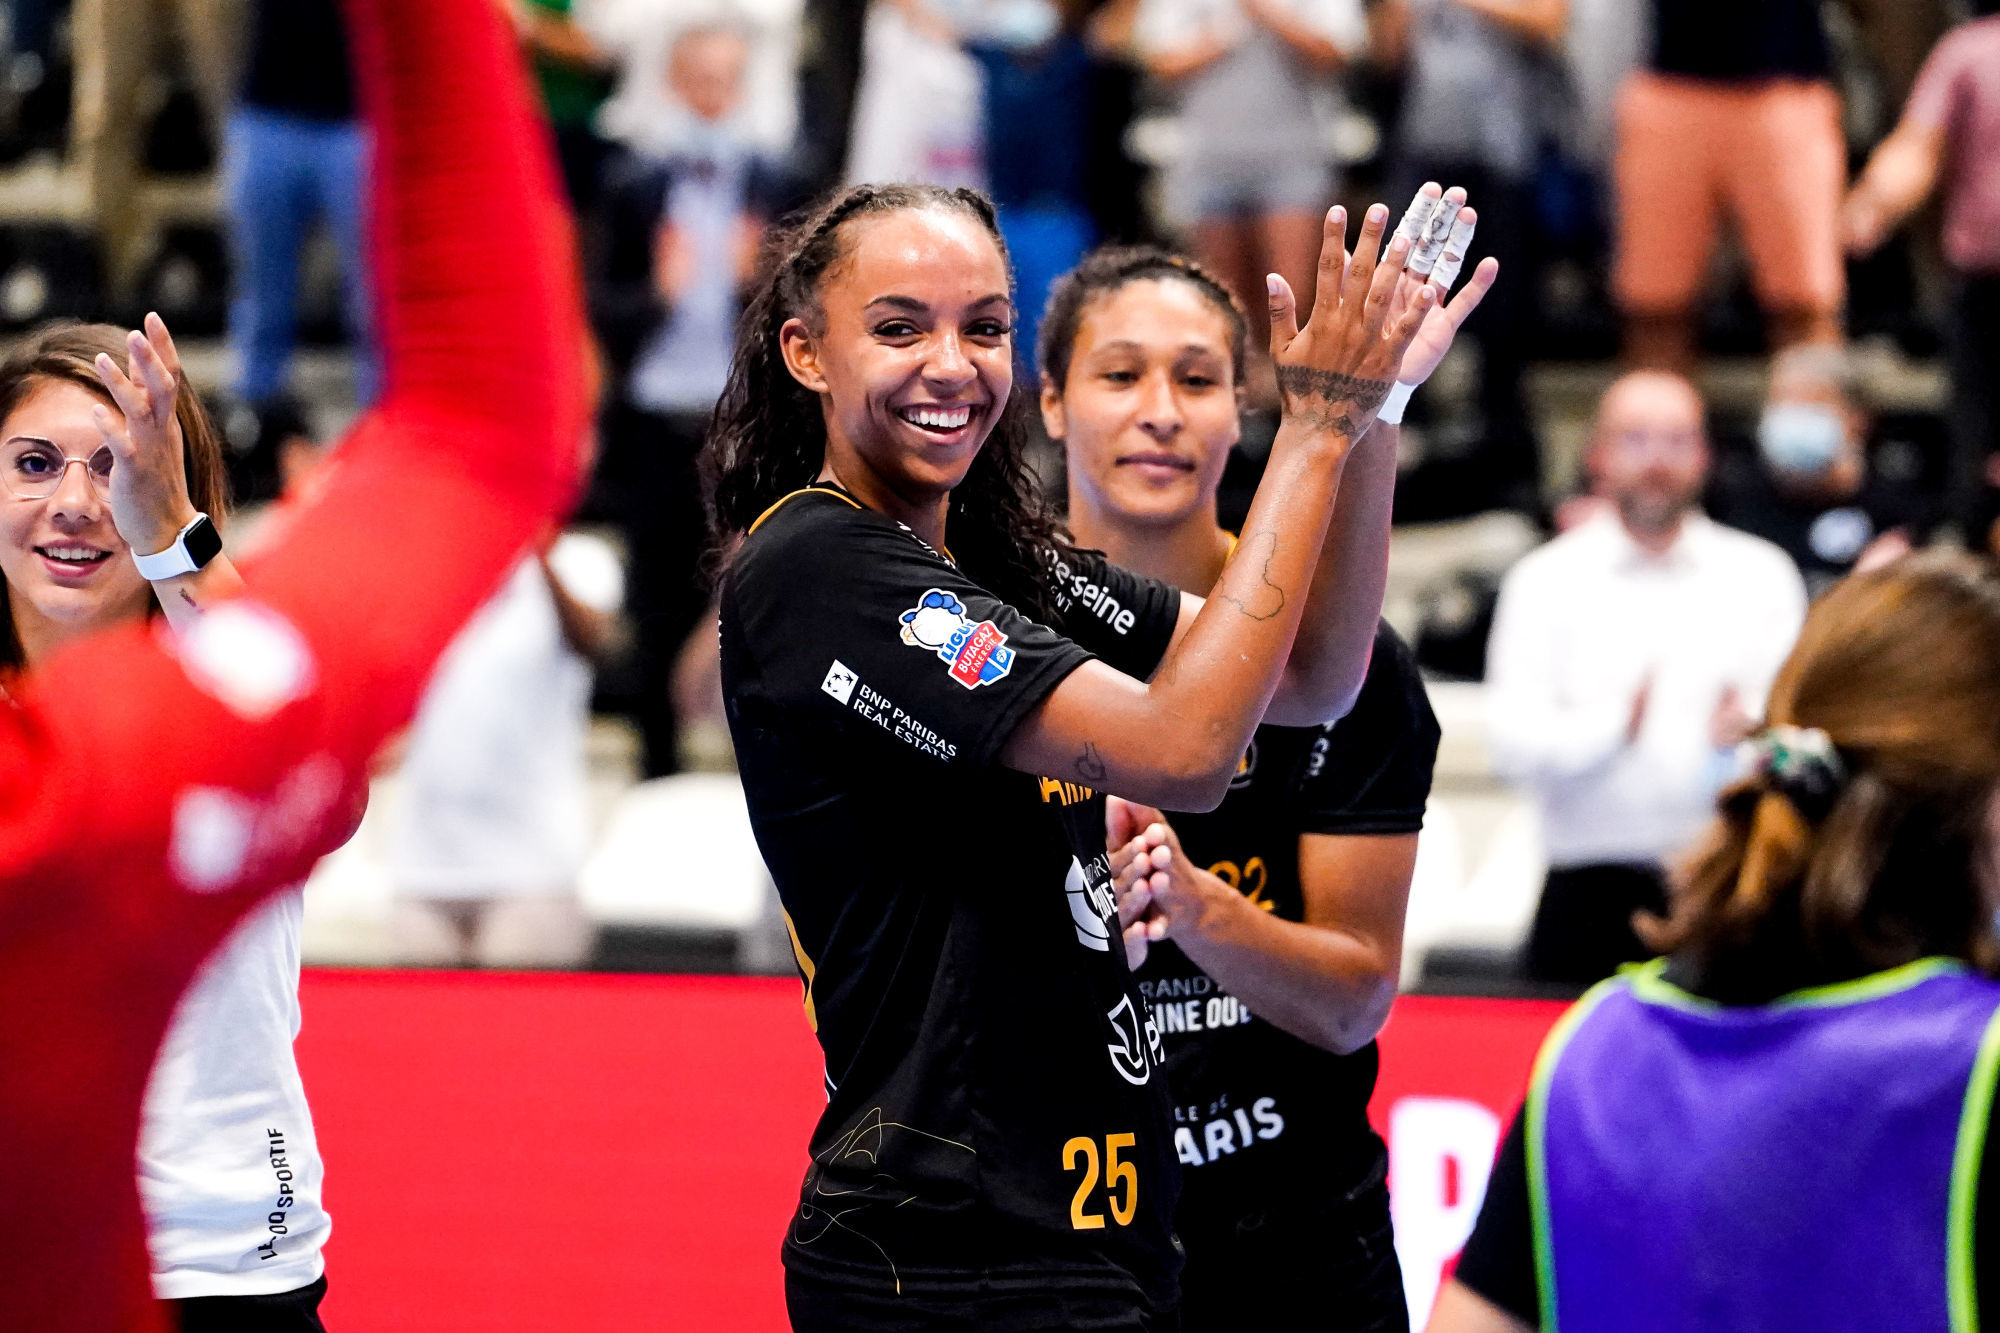 Marie Helene SAJKA of Paris 92 celebrate during the Ligue Butaguaz Energie match between Paris 92 and Chambray at Palais des Sports on September 8, 2021 in Paris, France. (Photo by Hugo Pfeiffer/Icon Sport) - Palais des Sports Robert Charpentier - Issy-les-Moulineaux (France)